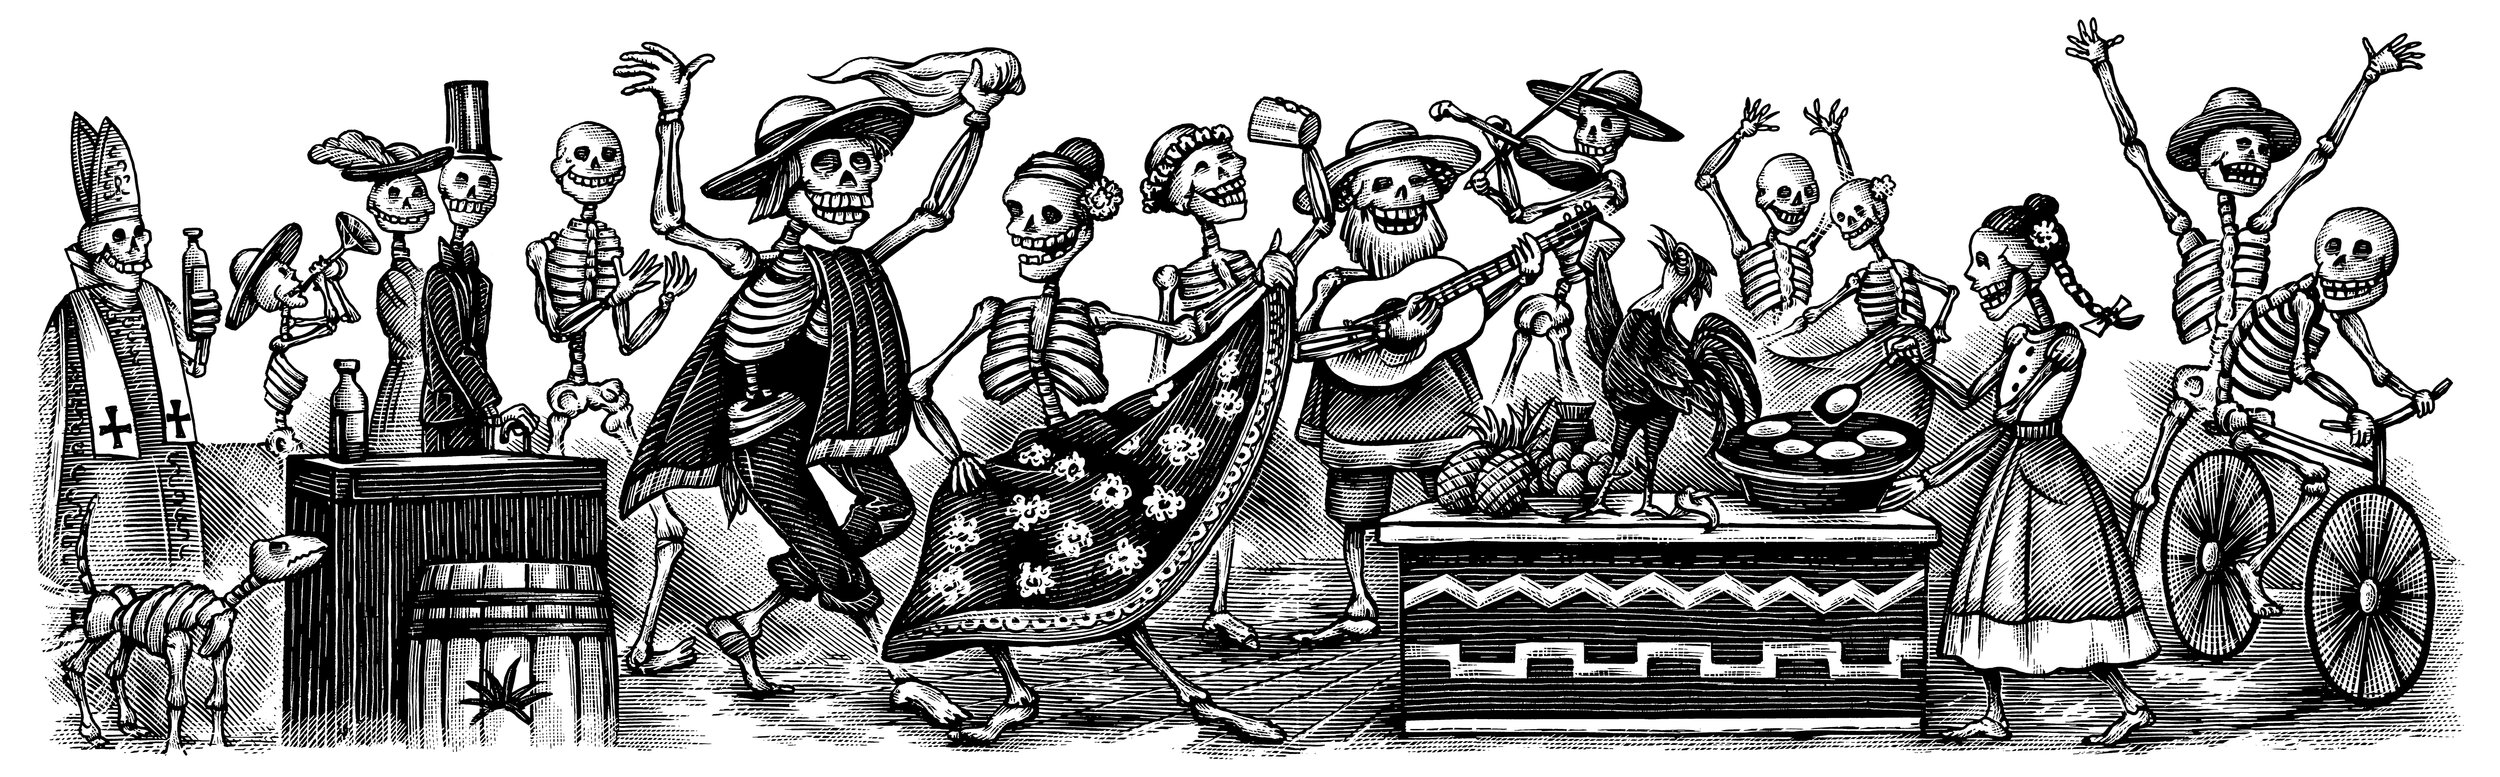 """Jarabe de Jalisco,"" the label for Espolòn Tequila Añejo shows the forbidden hat dance, and made as tribute to Jose Guadalupe Posada calavera skeletons."